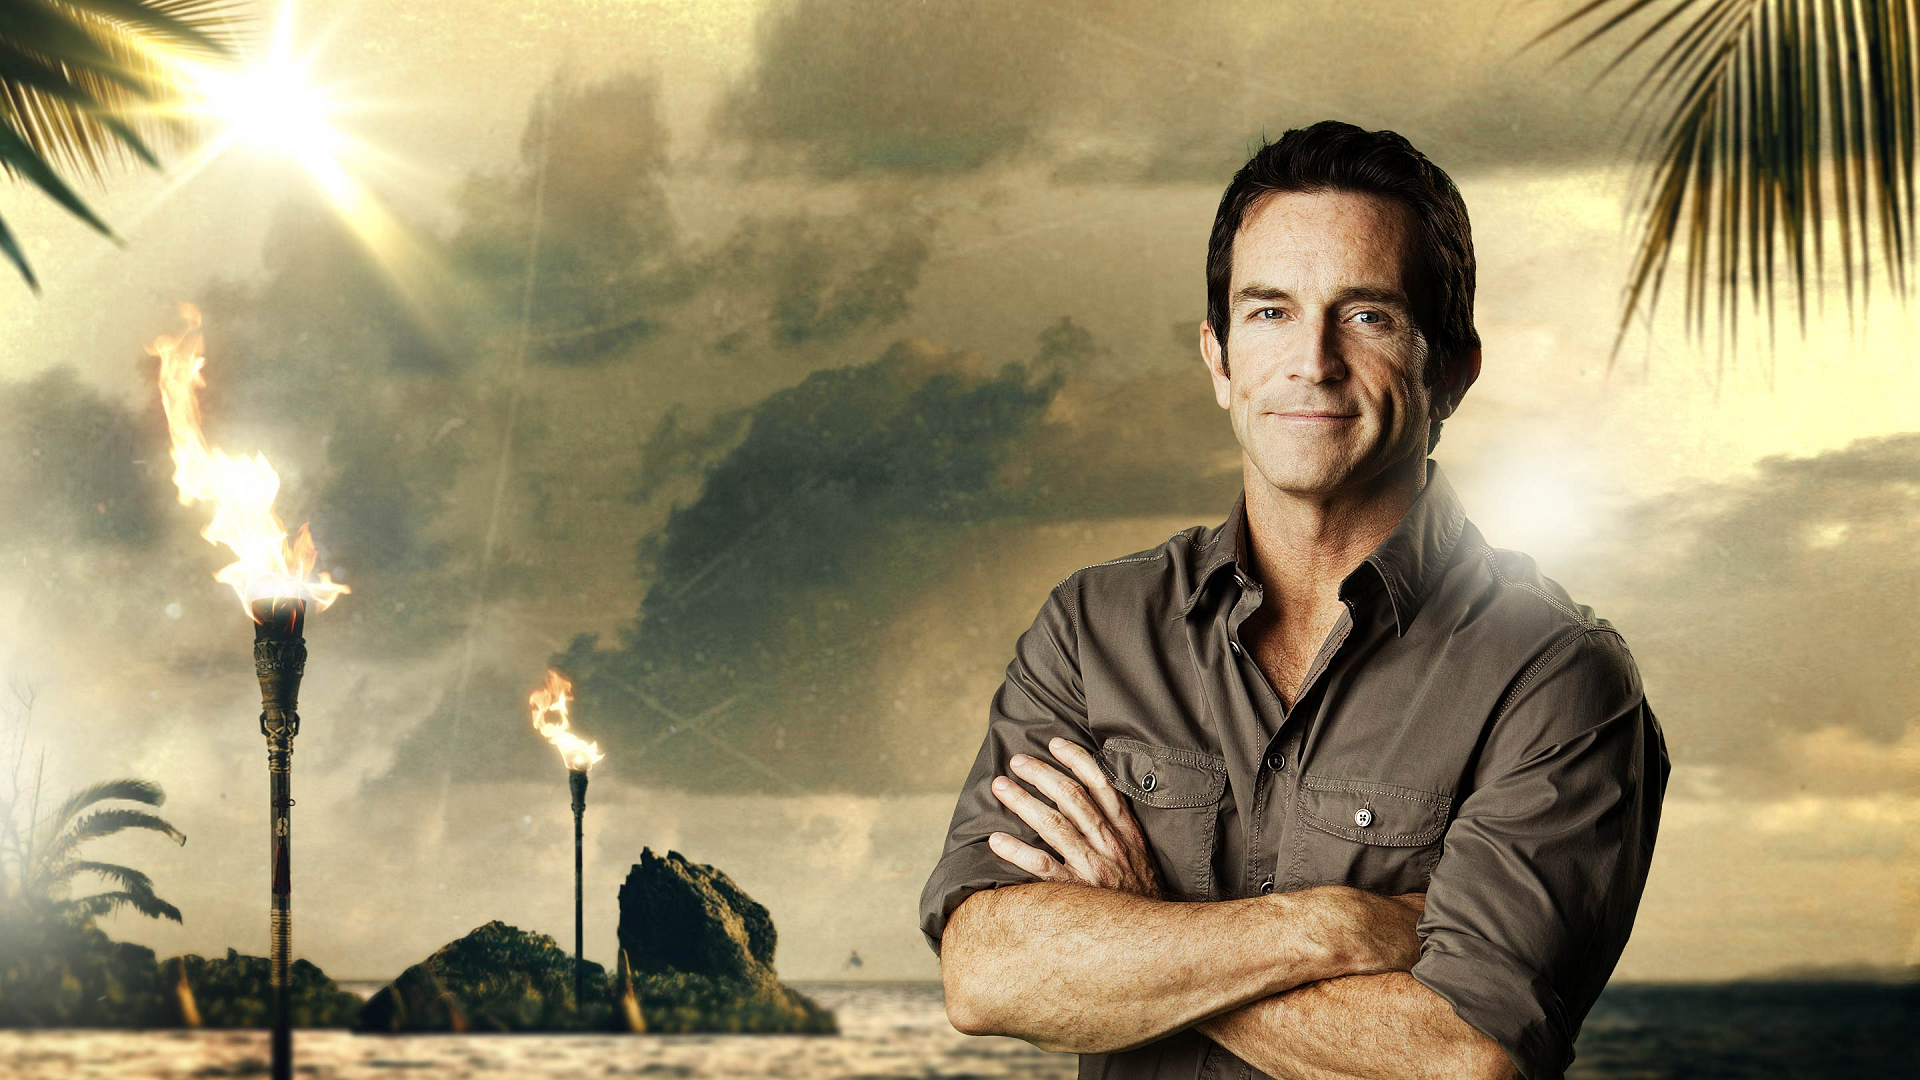 Survivor: Edge of Extinction (Official Site) - Watch on CBS